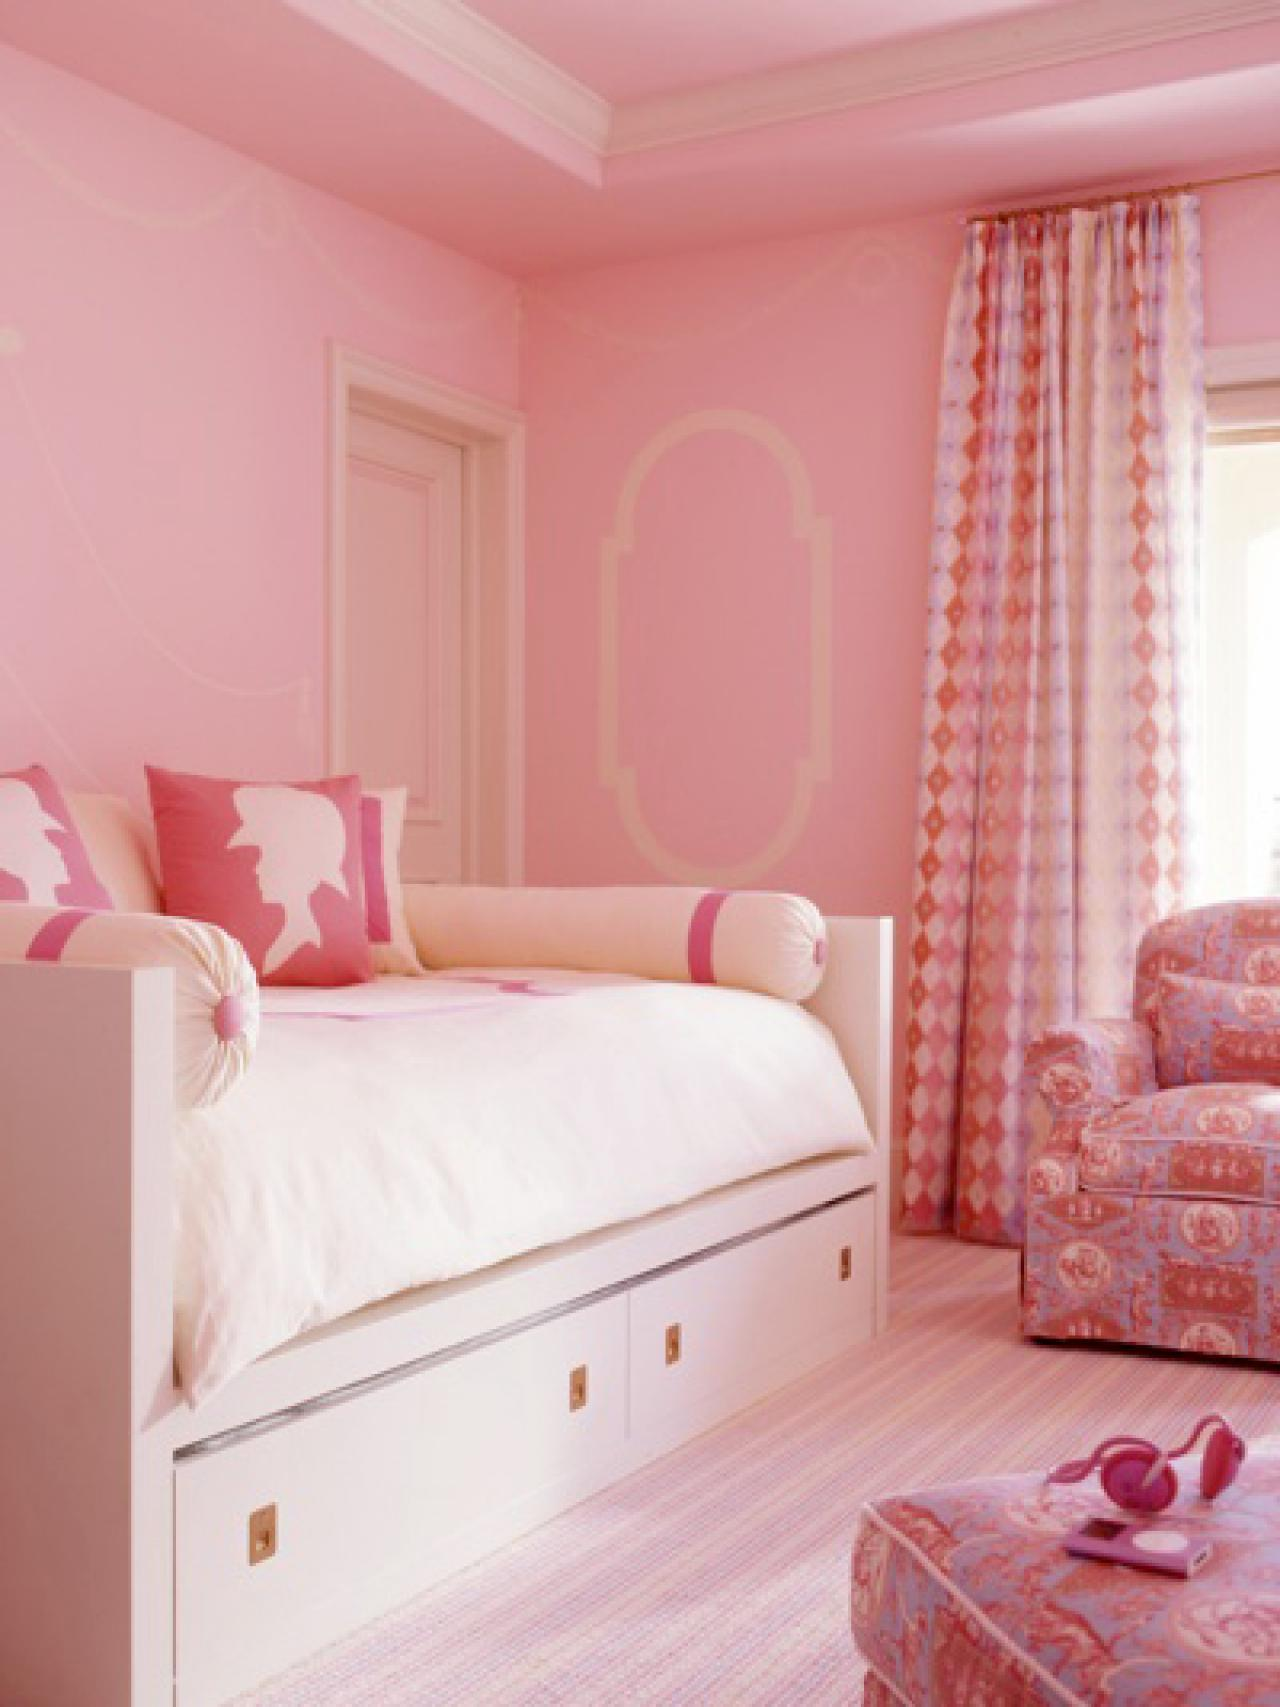 Paint colors for bedrooms pink - Cottage Charm